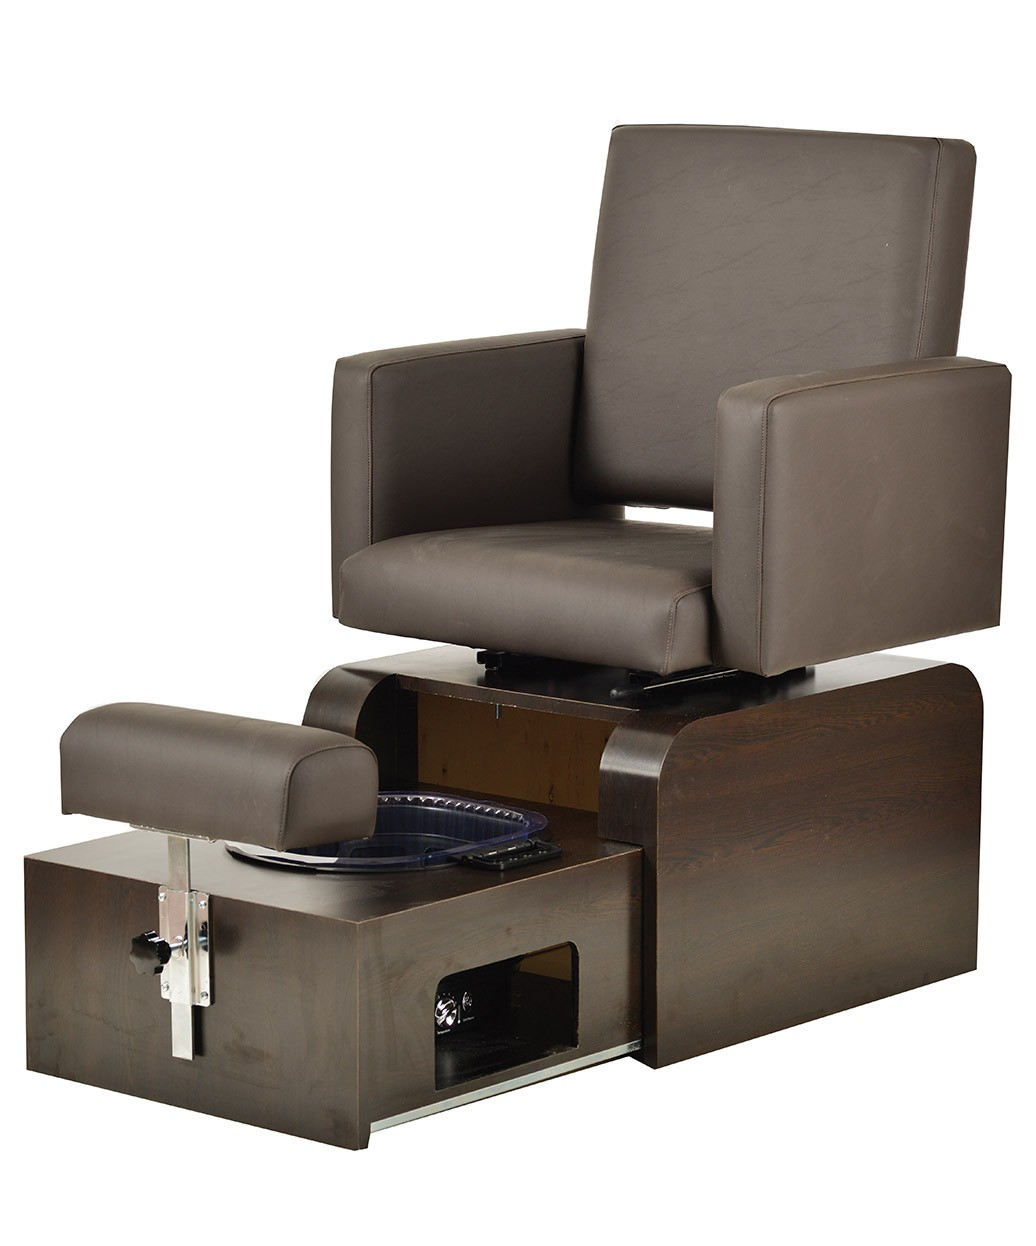 Pedicure Chair Pibbs Ps10 San Remo Footsie Pedicure Spa